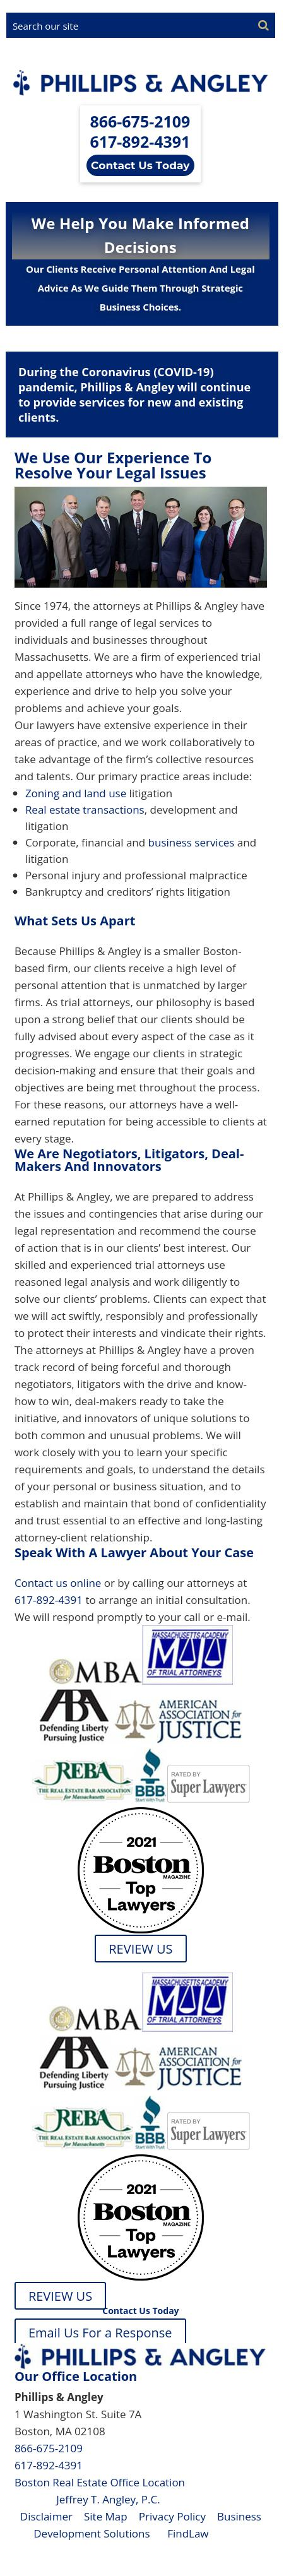 Phillips & Angley - Boston MA Lawyers